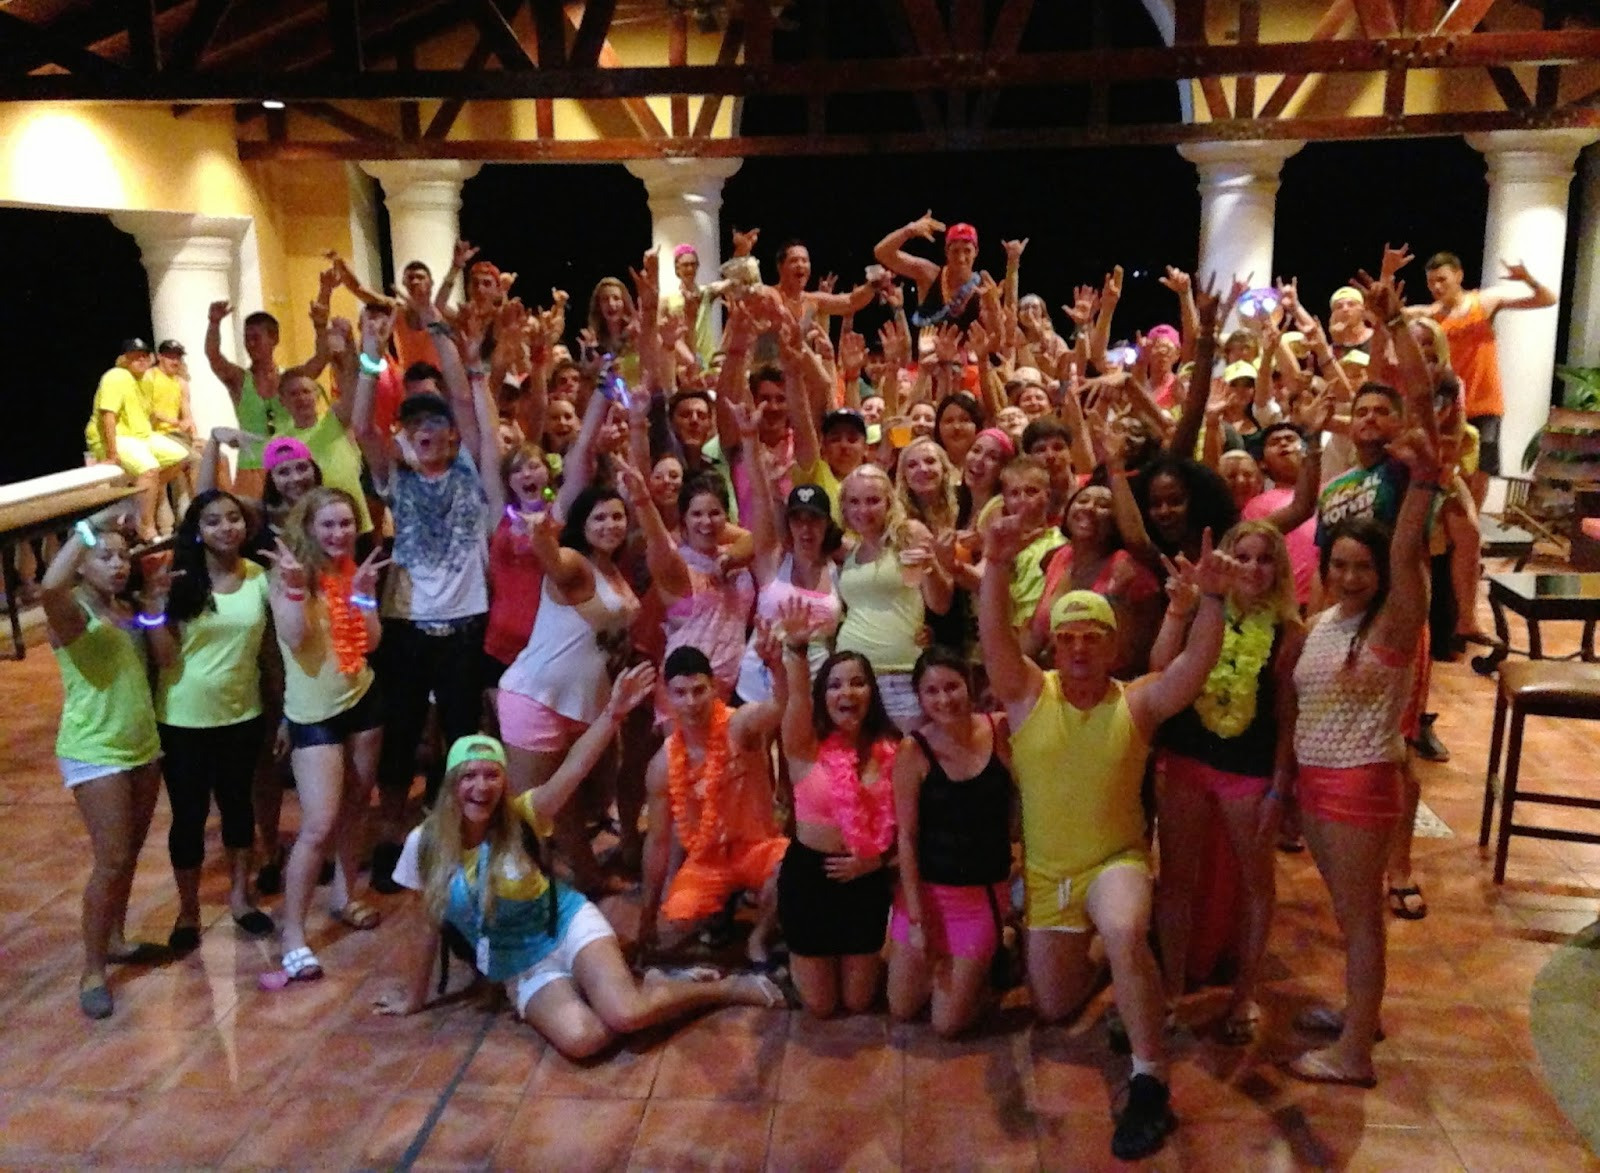 tight-and-bring-costa-rica-student-trip-2014